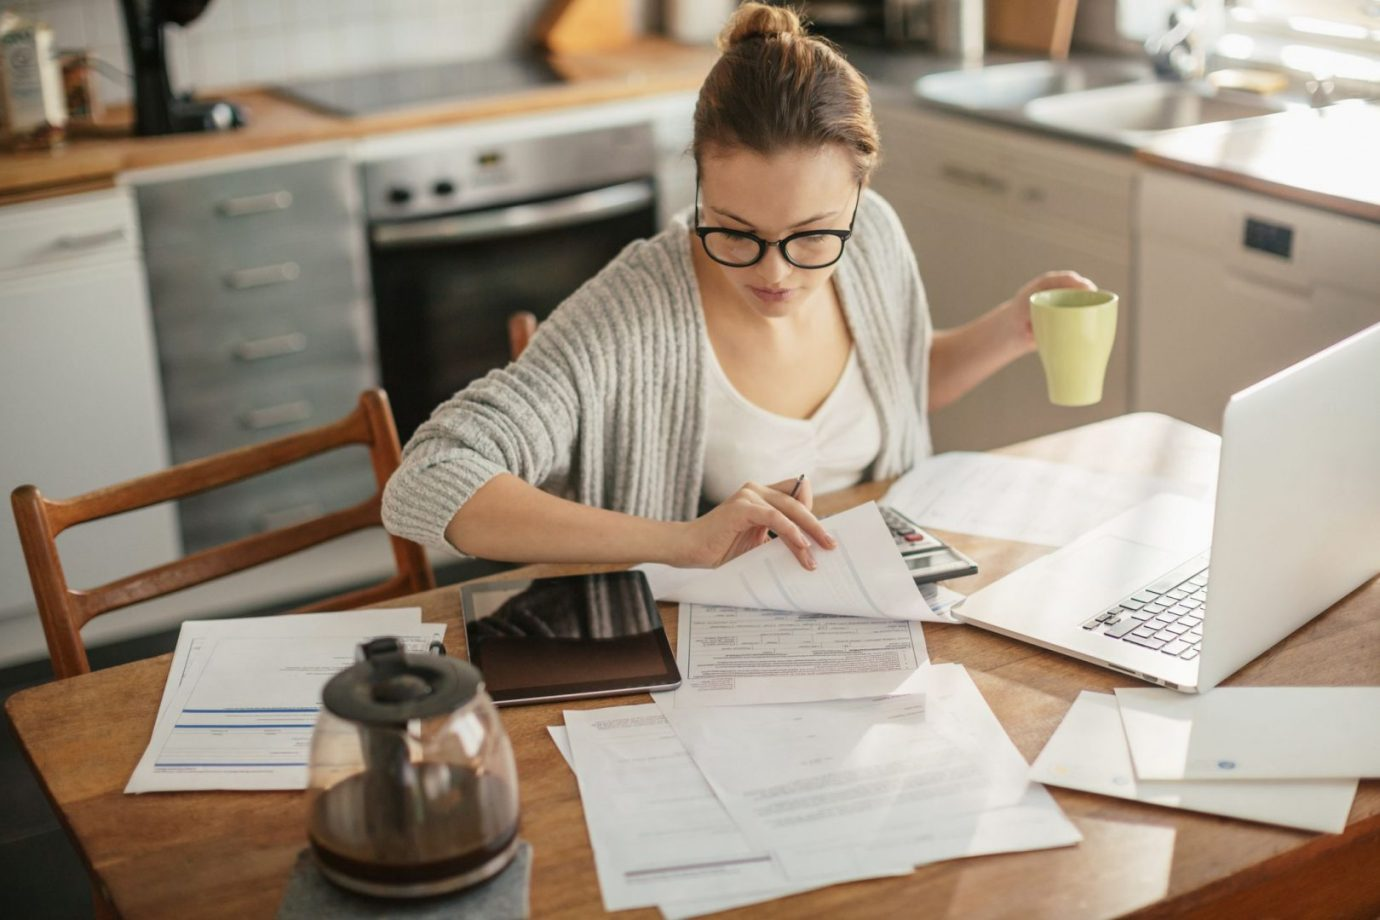 Research: Over A Million Self-Employed Believe They Will Never Be Able To Own A Home